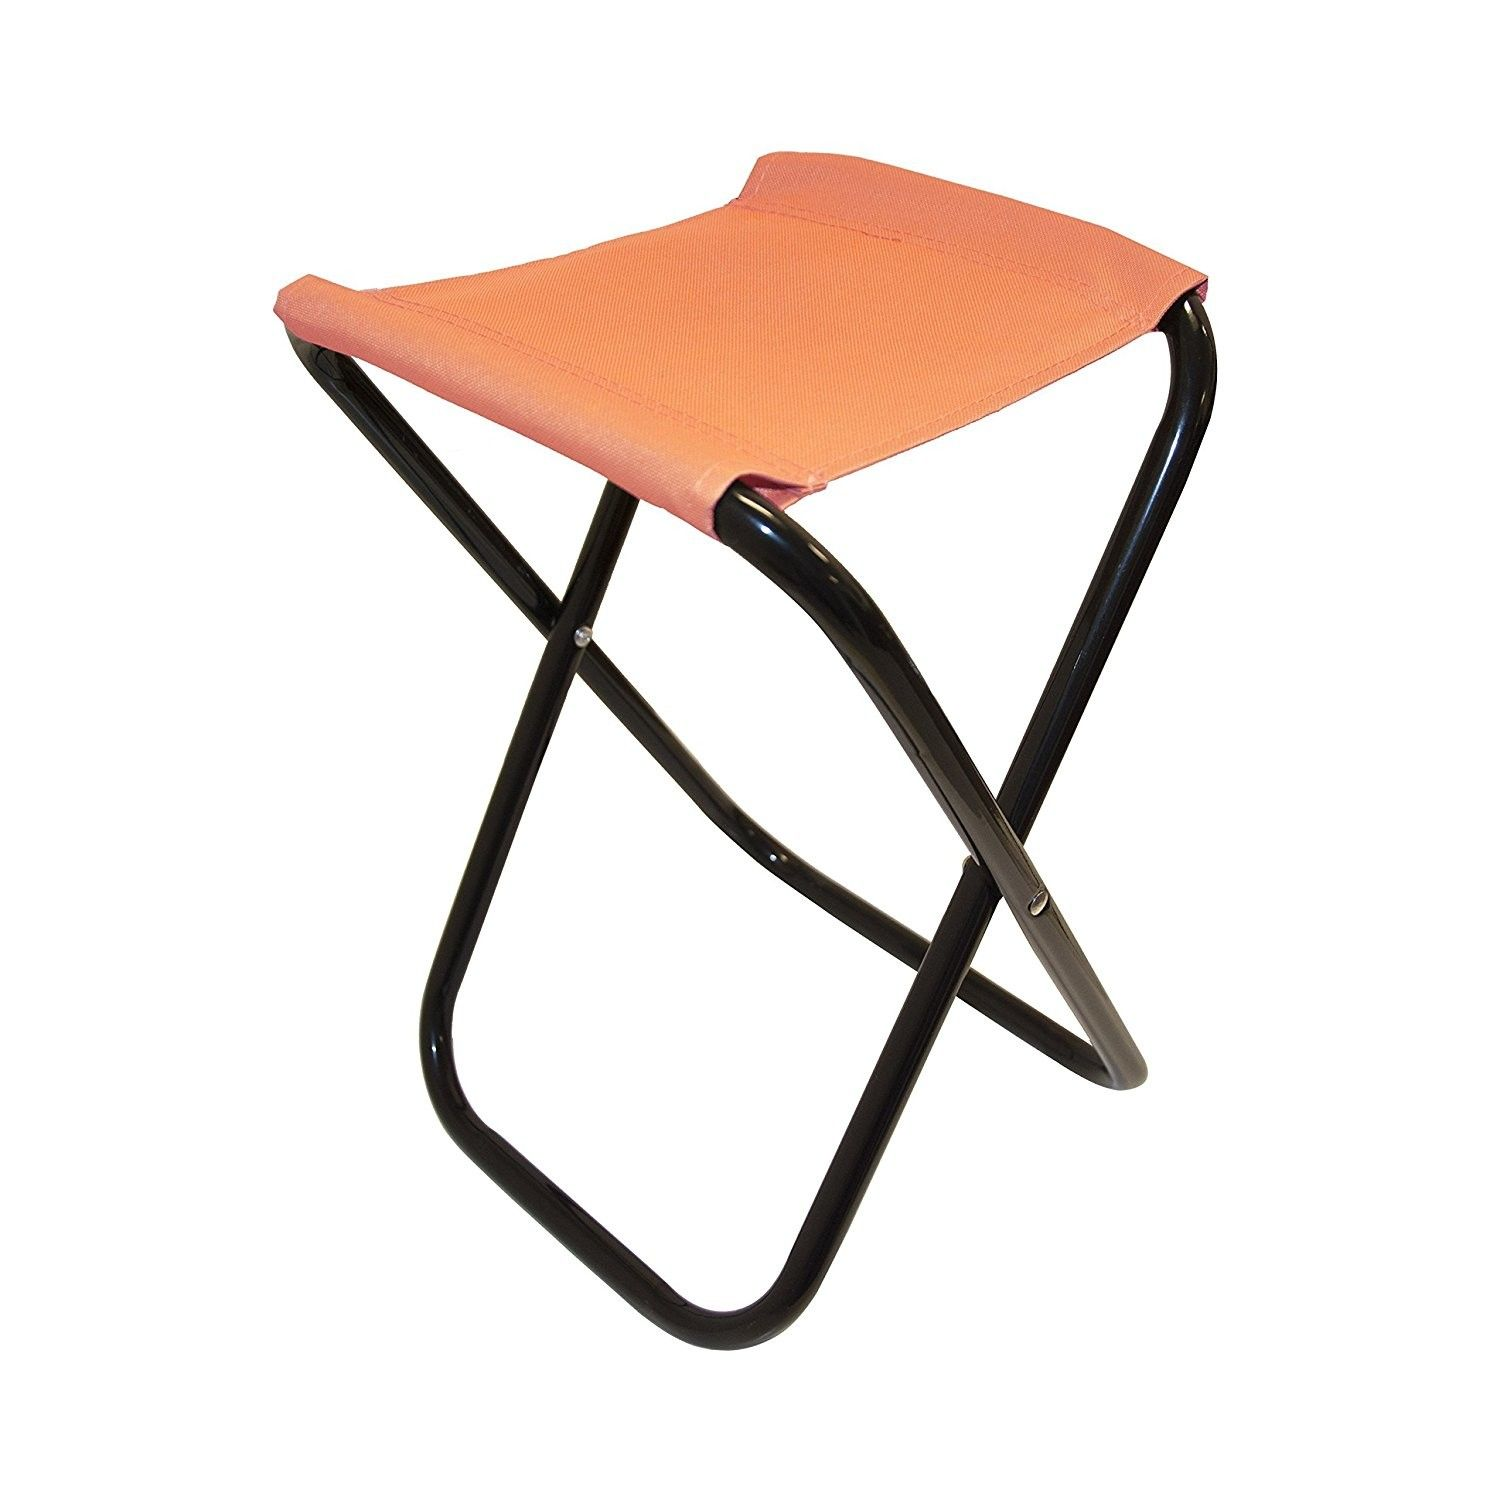 Outdoor Foldable Camping Chair Camping chairs, Camping